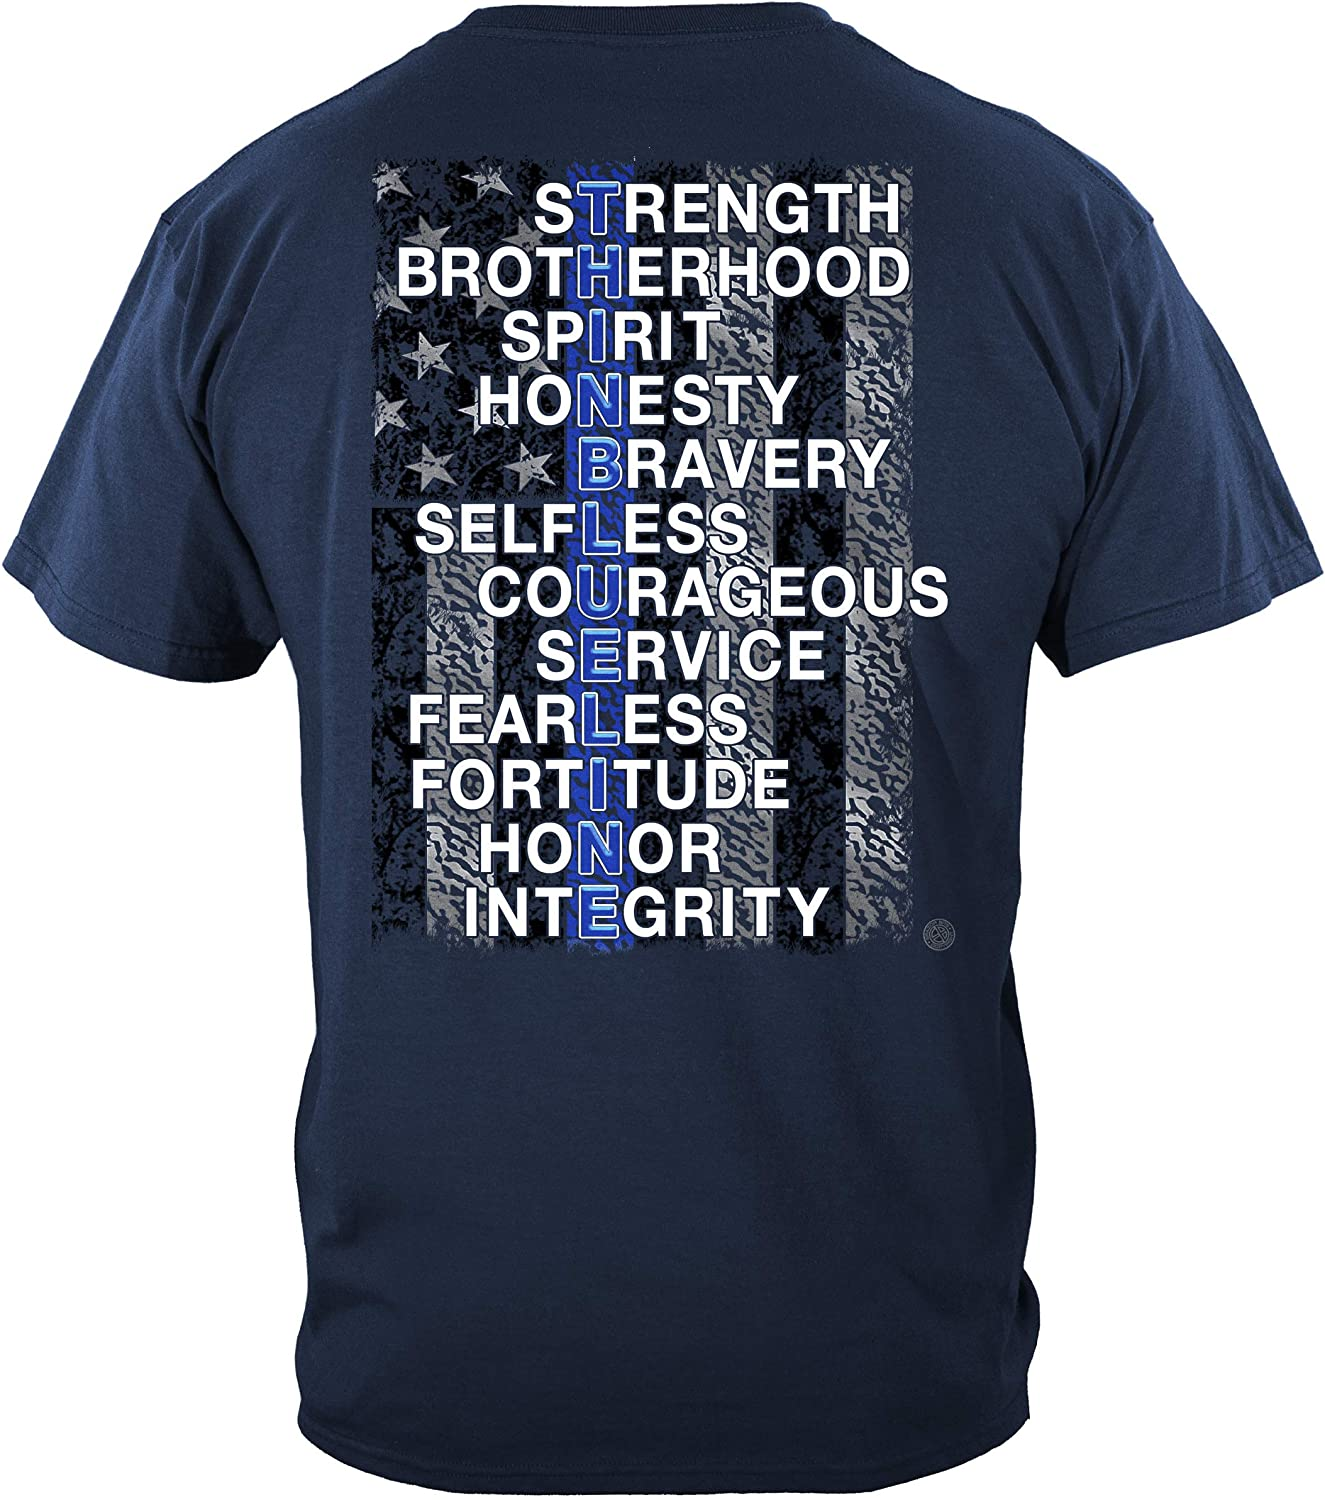 Thin Blue Line T Shirt - Free shipping Gear Max 58% OFF Enfo Men Enforcement Law for